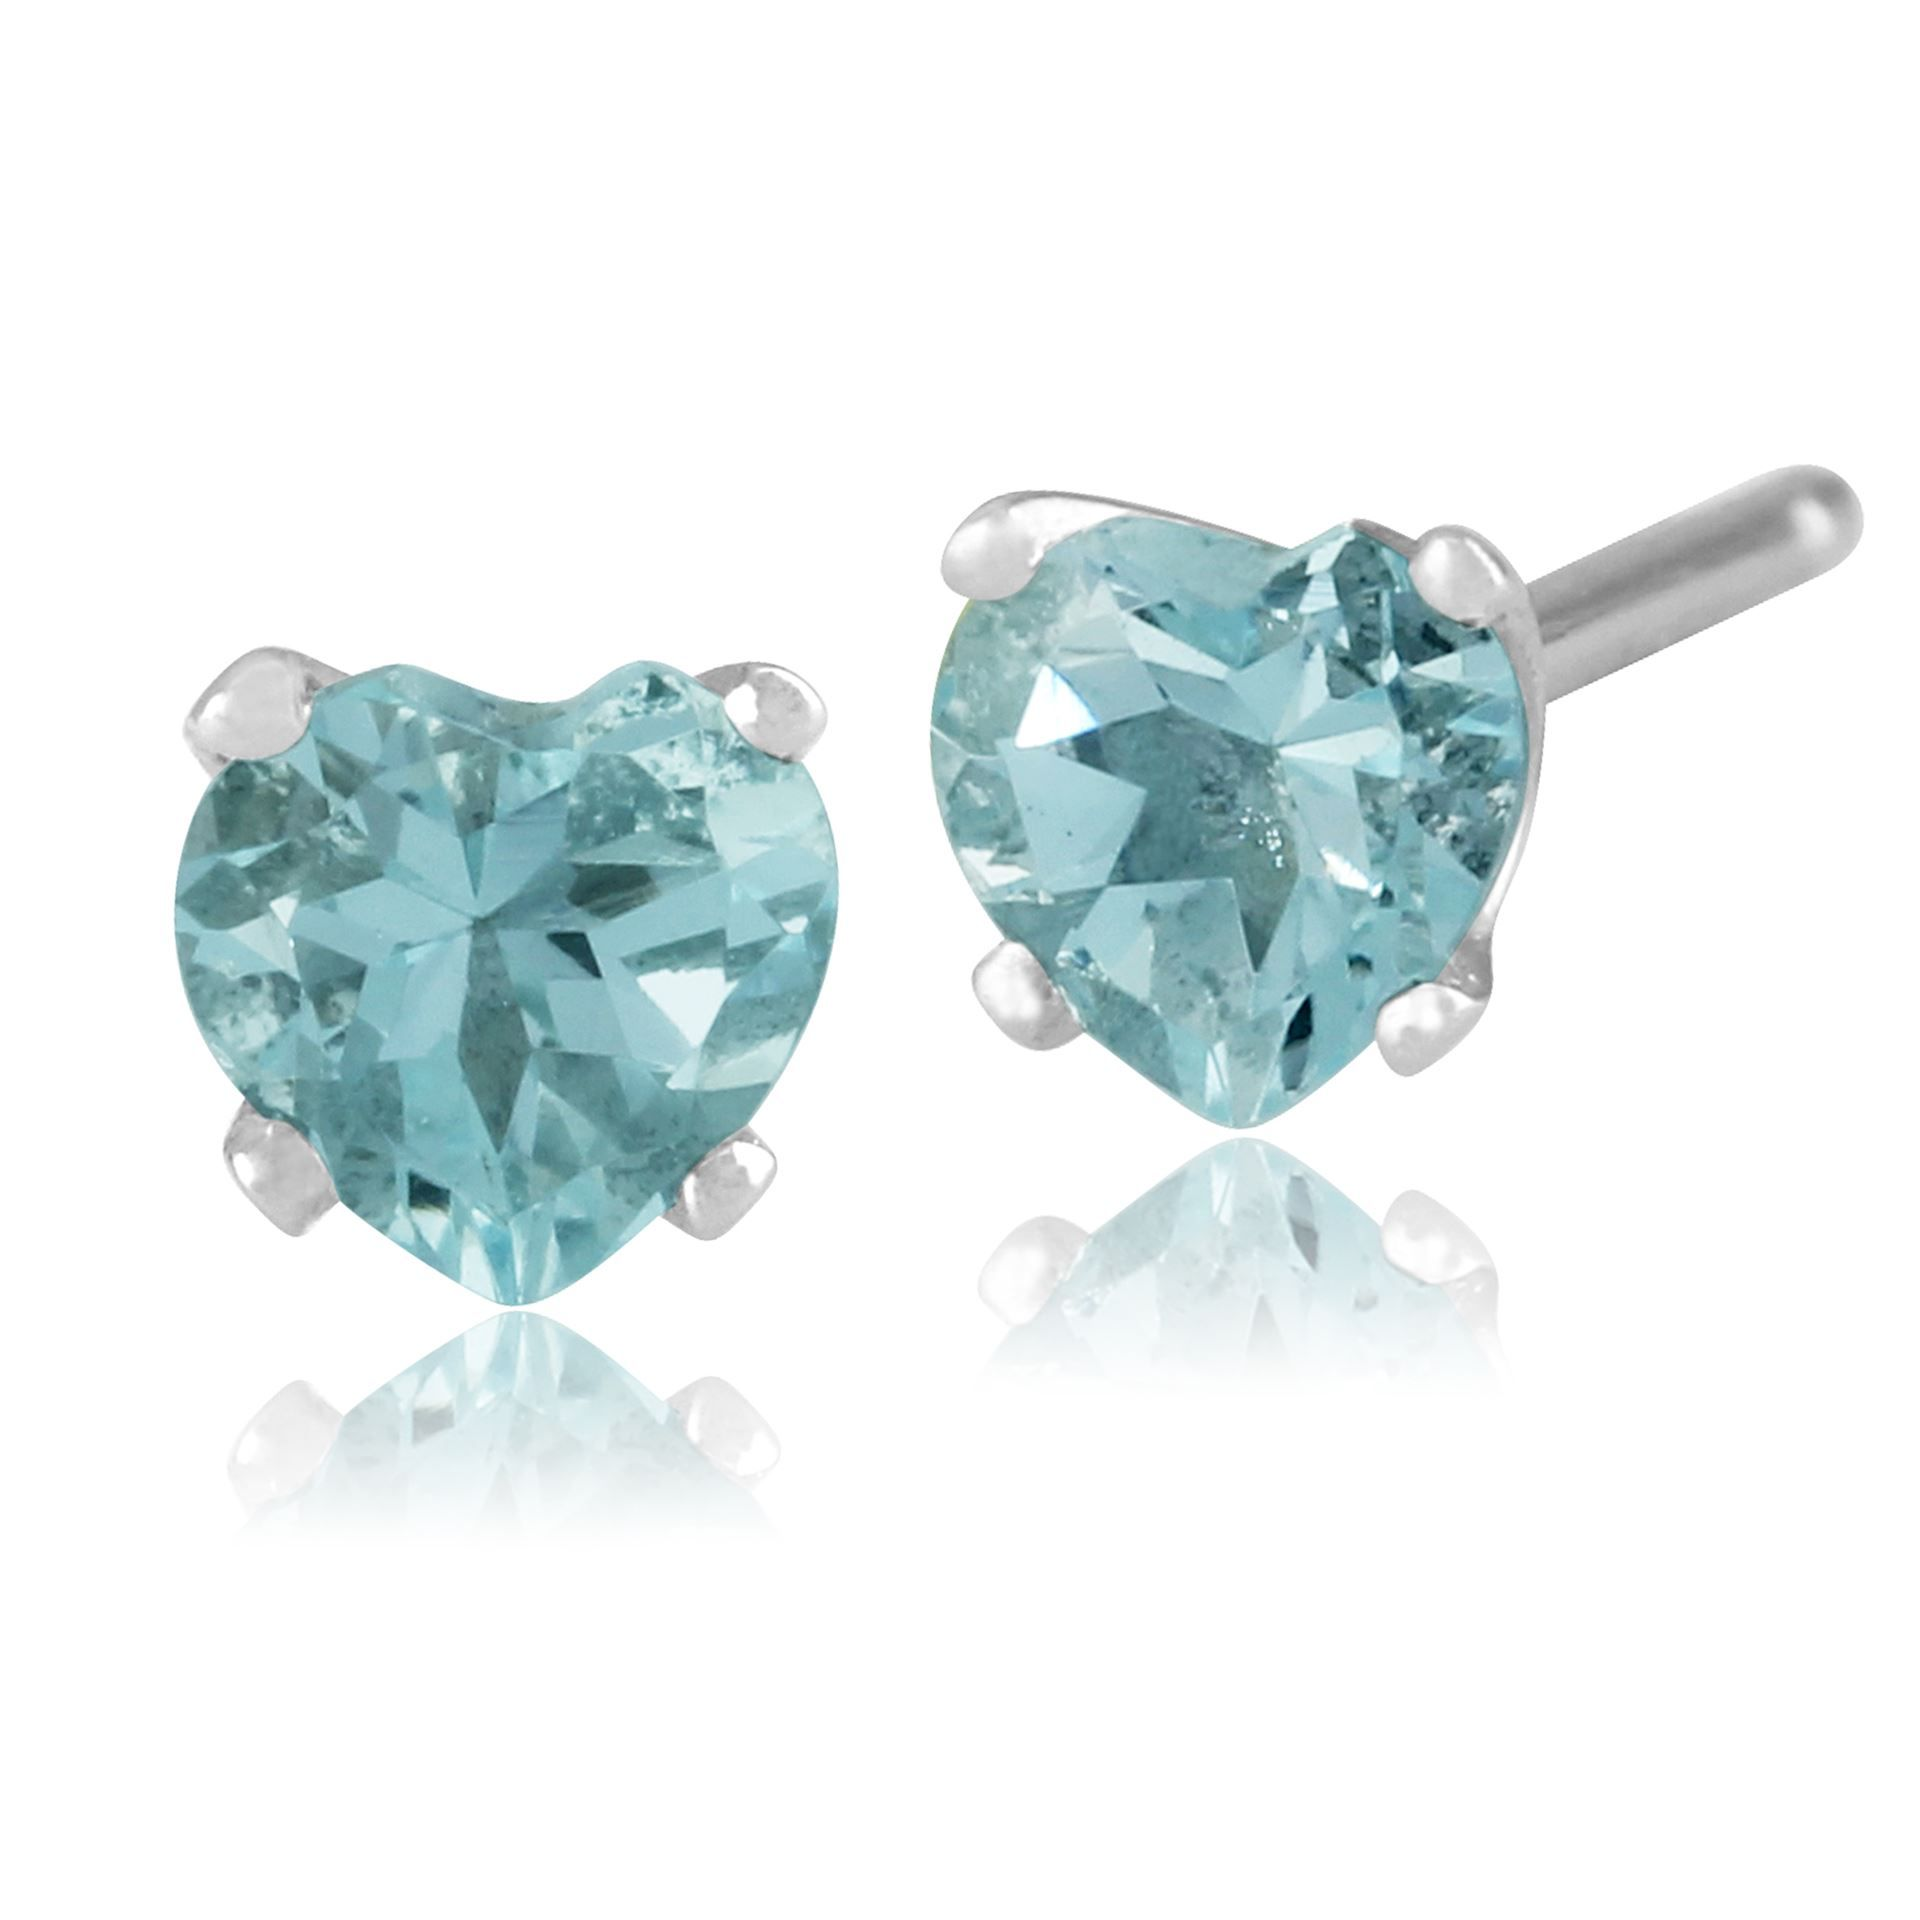 yellow earrings charmisma stud aqua gold from uk marine aquamarine